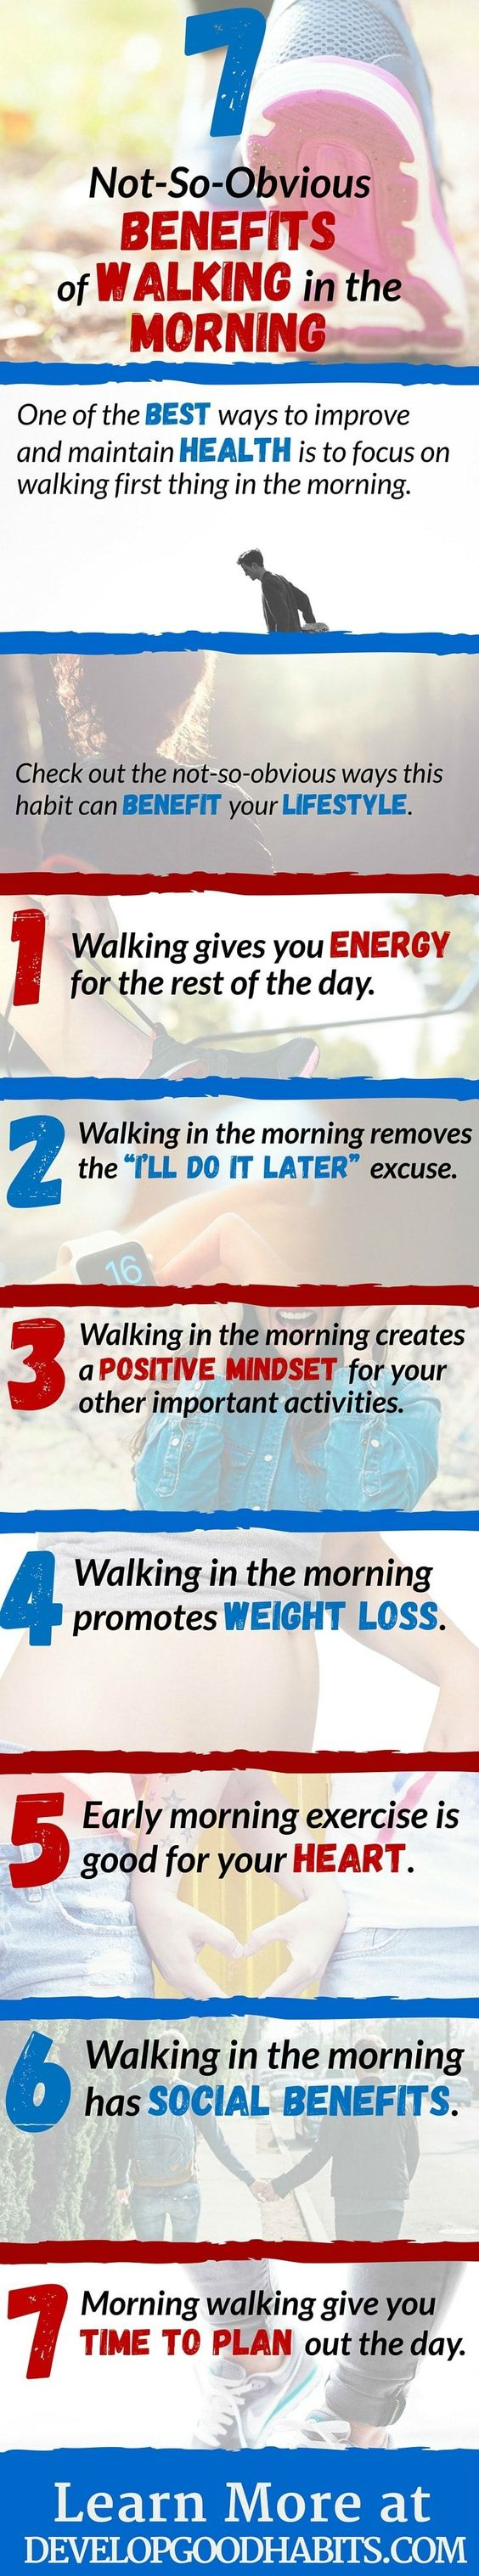 Benefits of walking in the morning